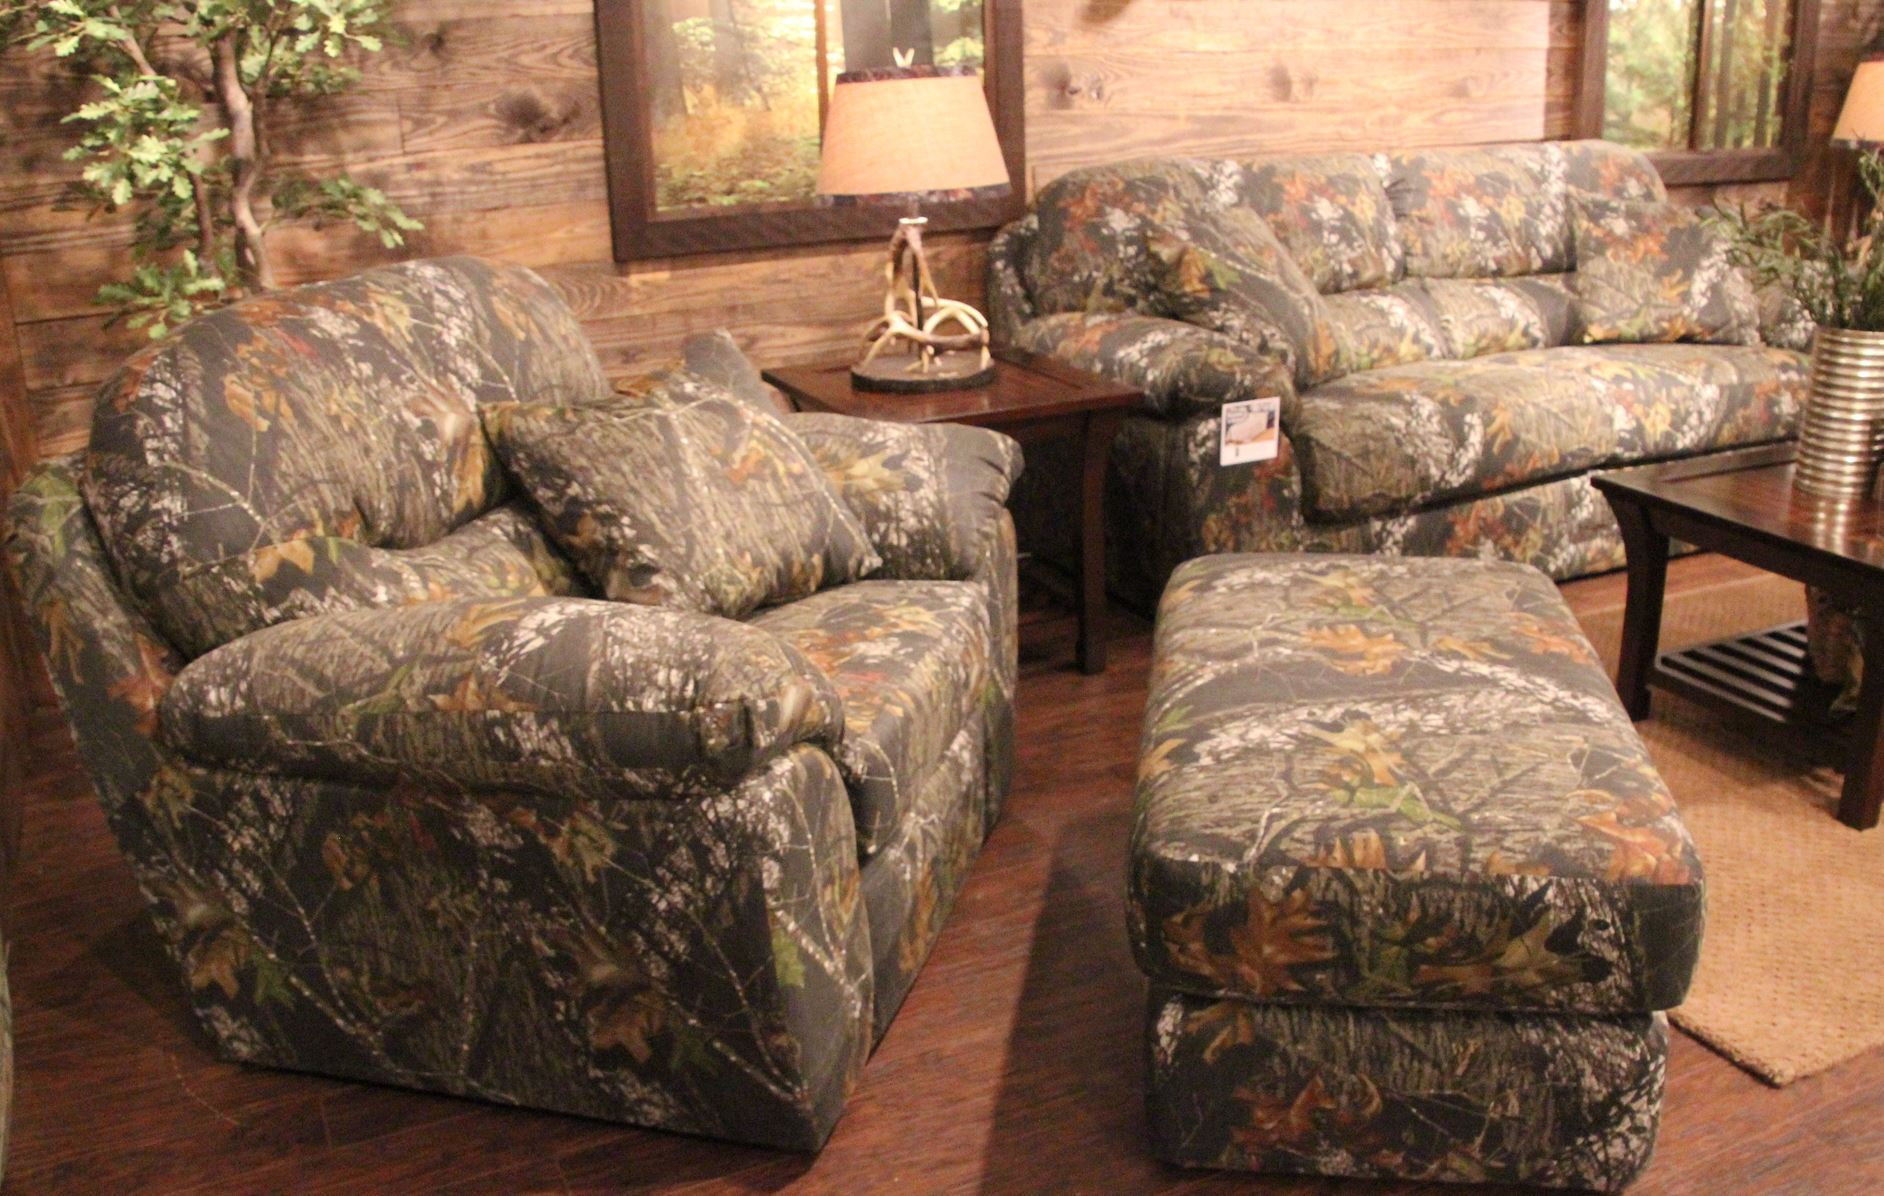 Quot Duck Dynasty Quot Merchandise Hits Stores Pittsburgh Post